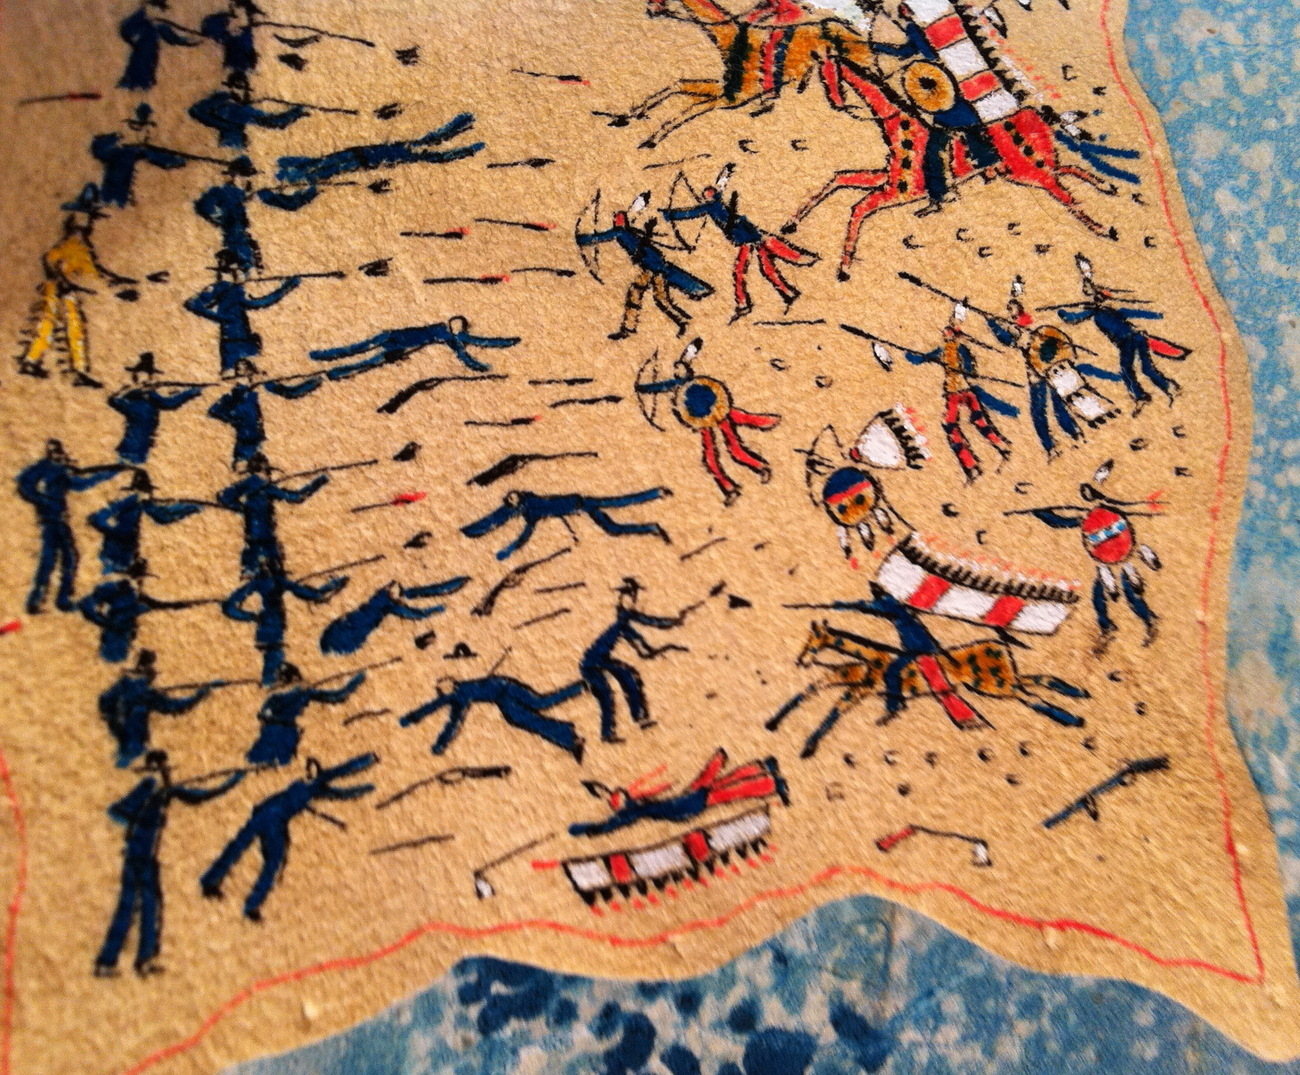 Leather Pictograph of Custer Battle With Sioux